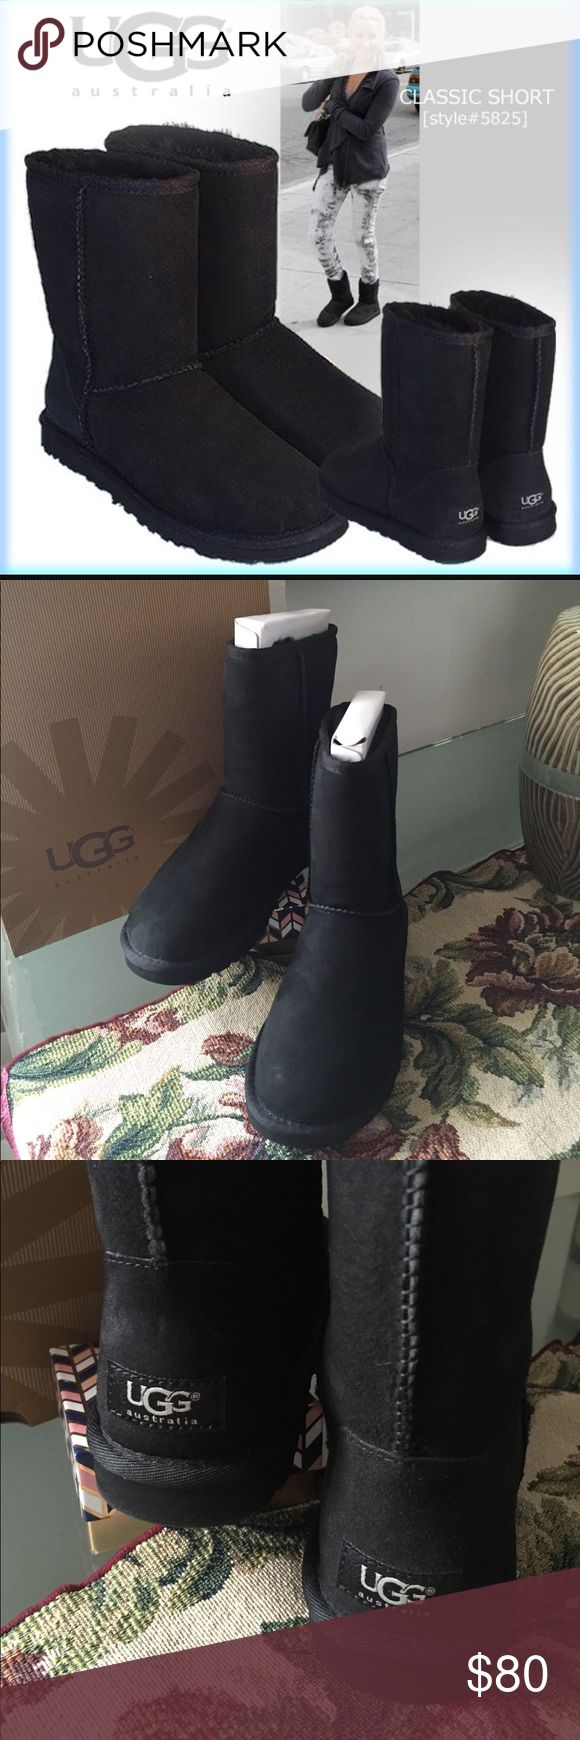 NEW UGG CLASSIC SHORT Brand new. With original box UGG Shoes Ankle Boots & Booties